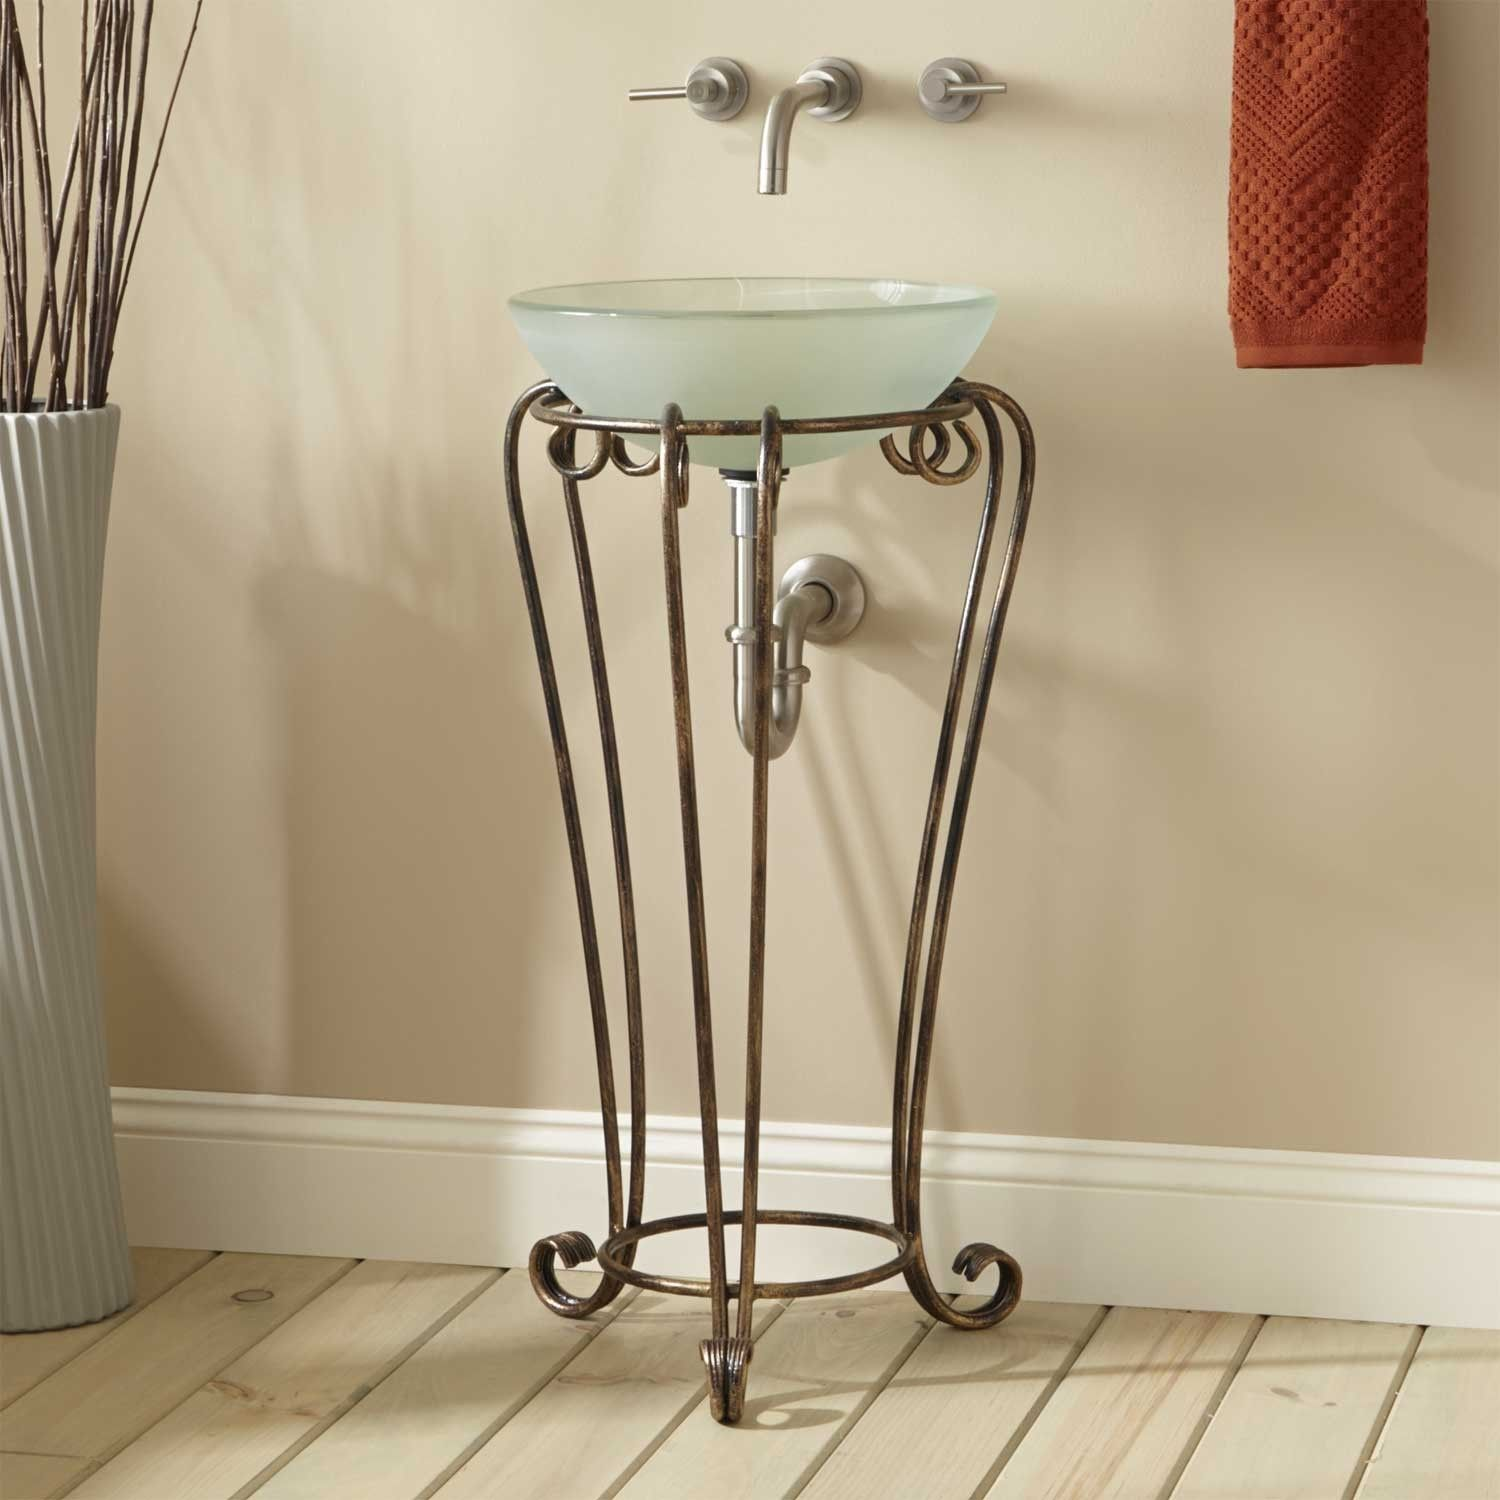 Art Exhibition Altan Wrought Iron Vessel Sink Stand